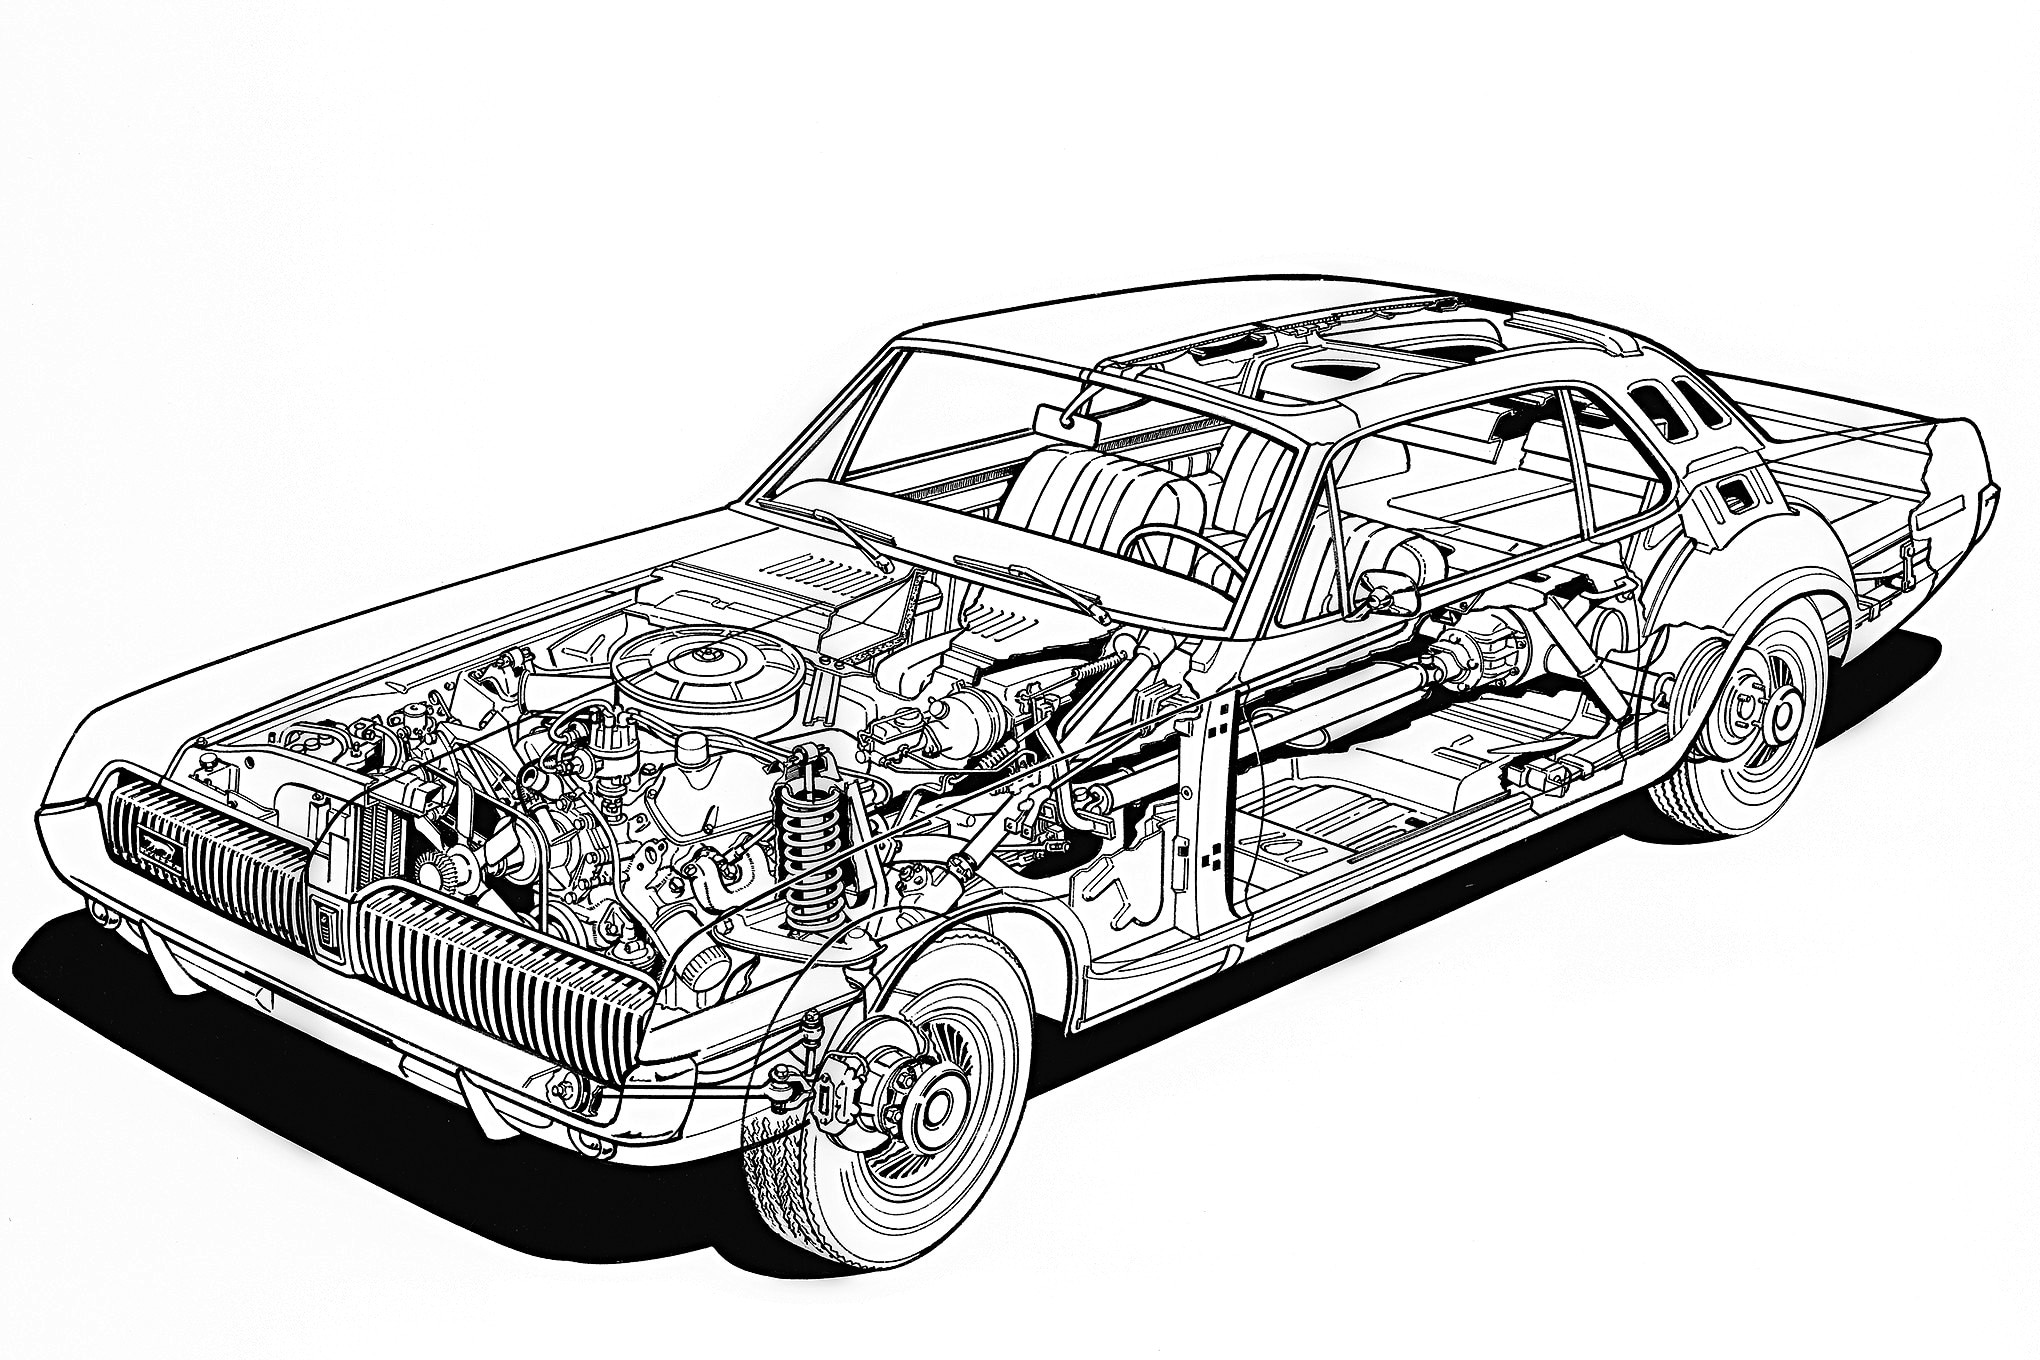 Rare Factory Photos And Juicy Trivia About The Mercury Cougar On Its 50th Anniversary